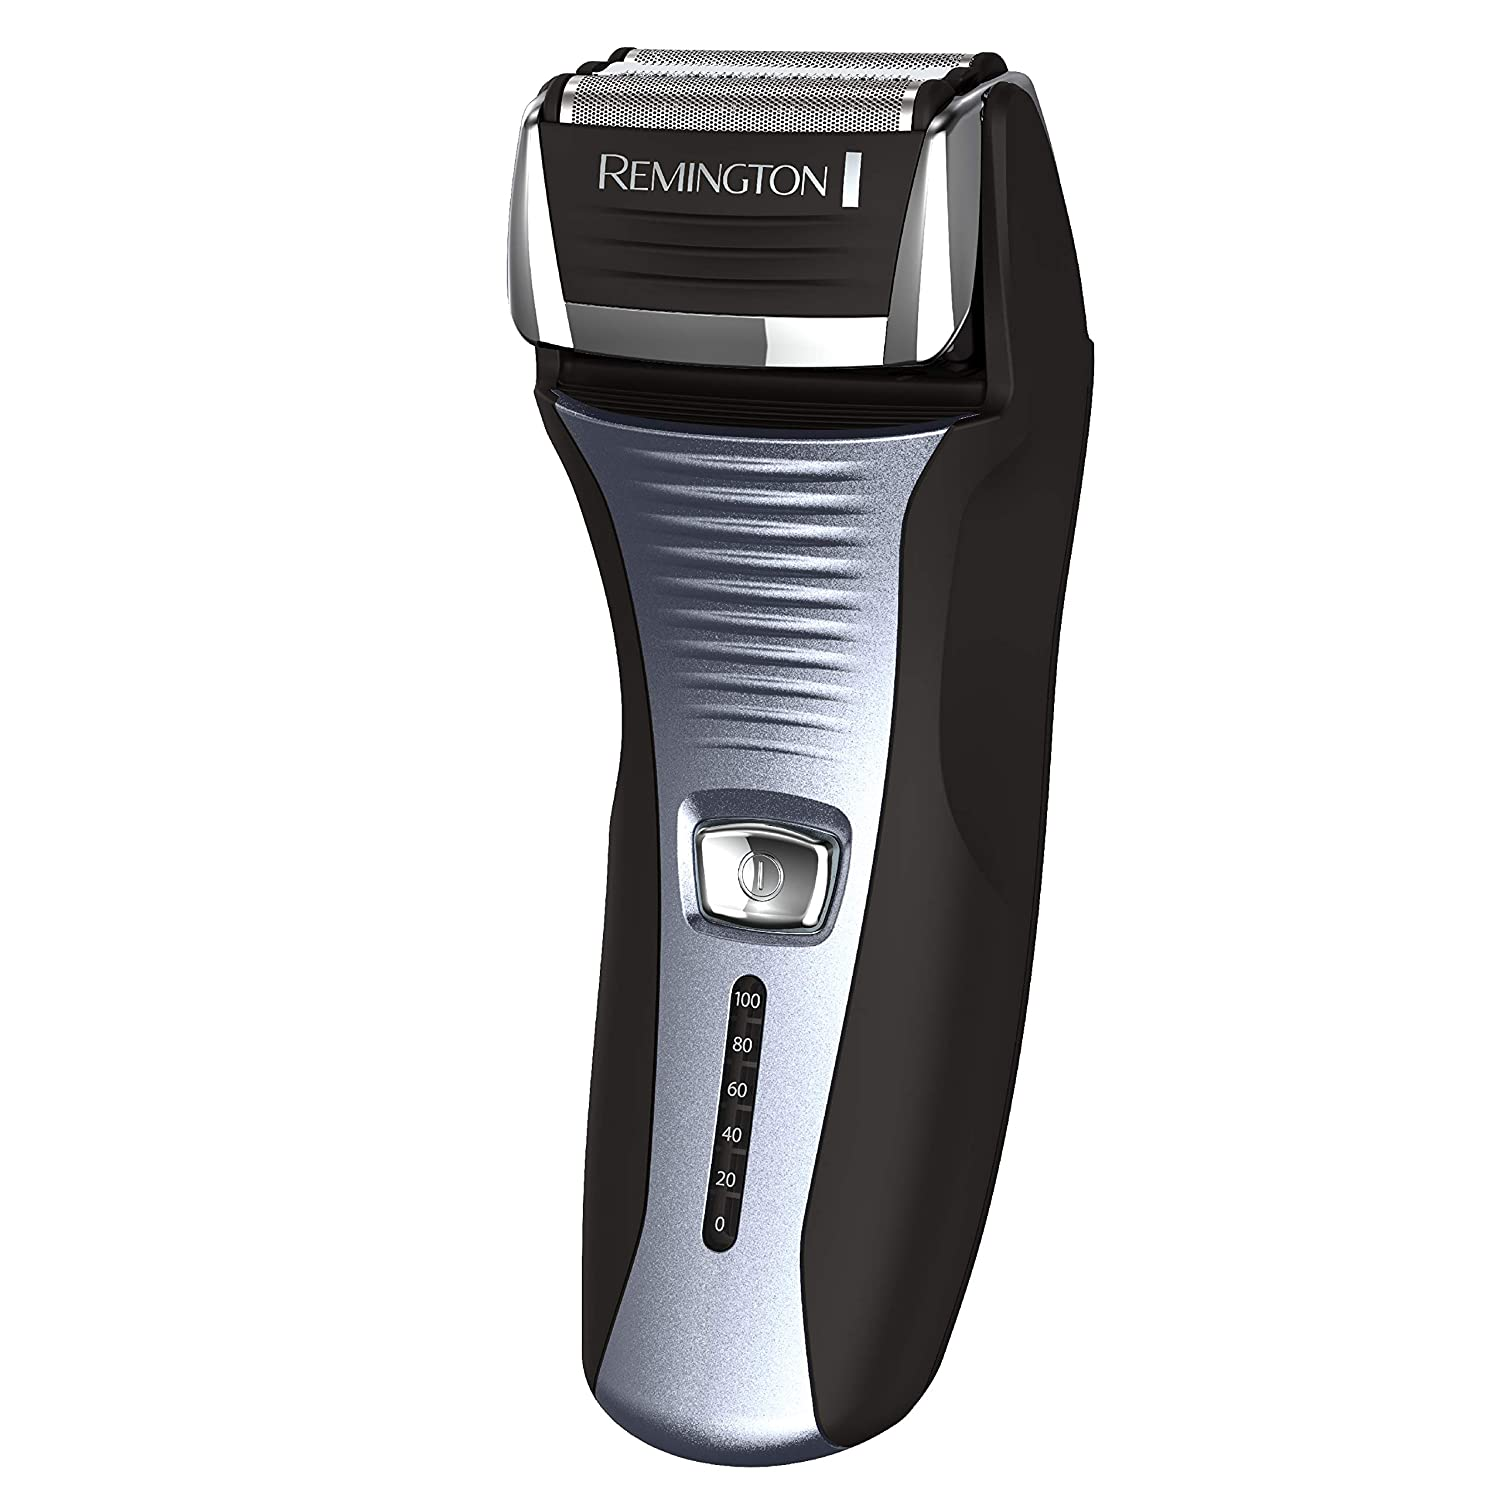 Best Foil Shaver in 2020: Reviews & Buying Guide 3